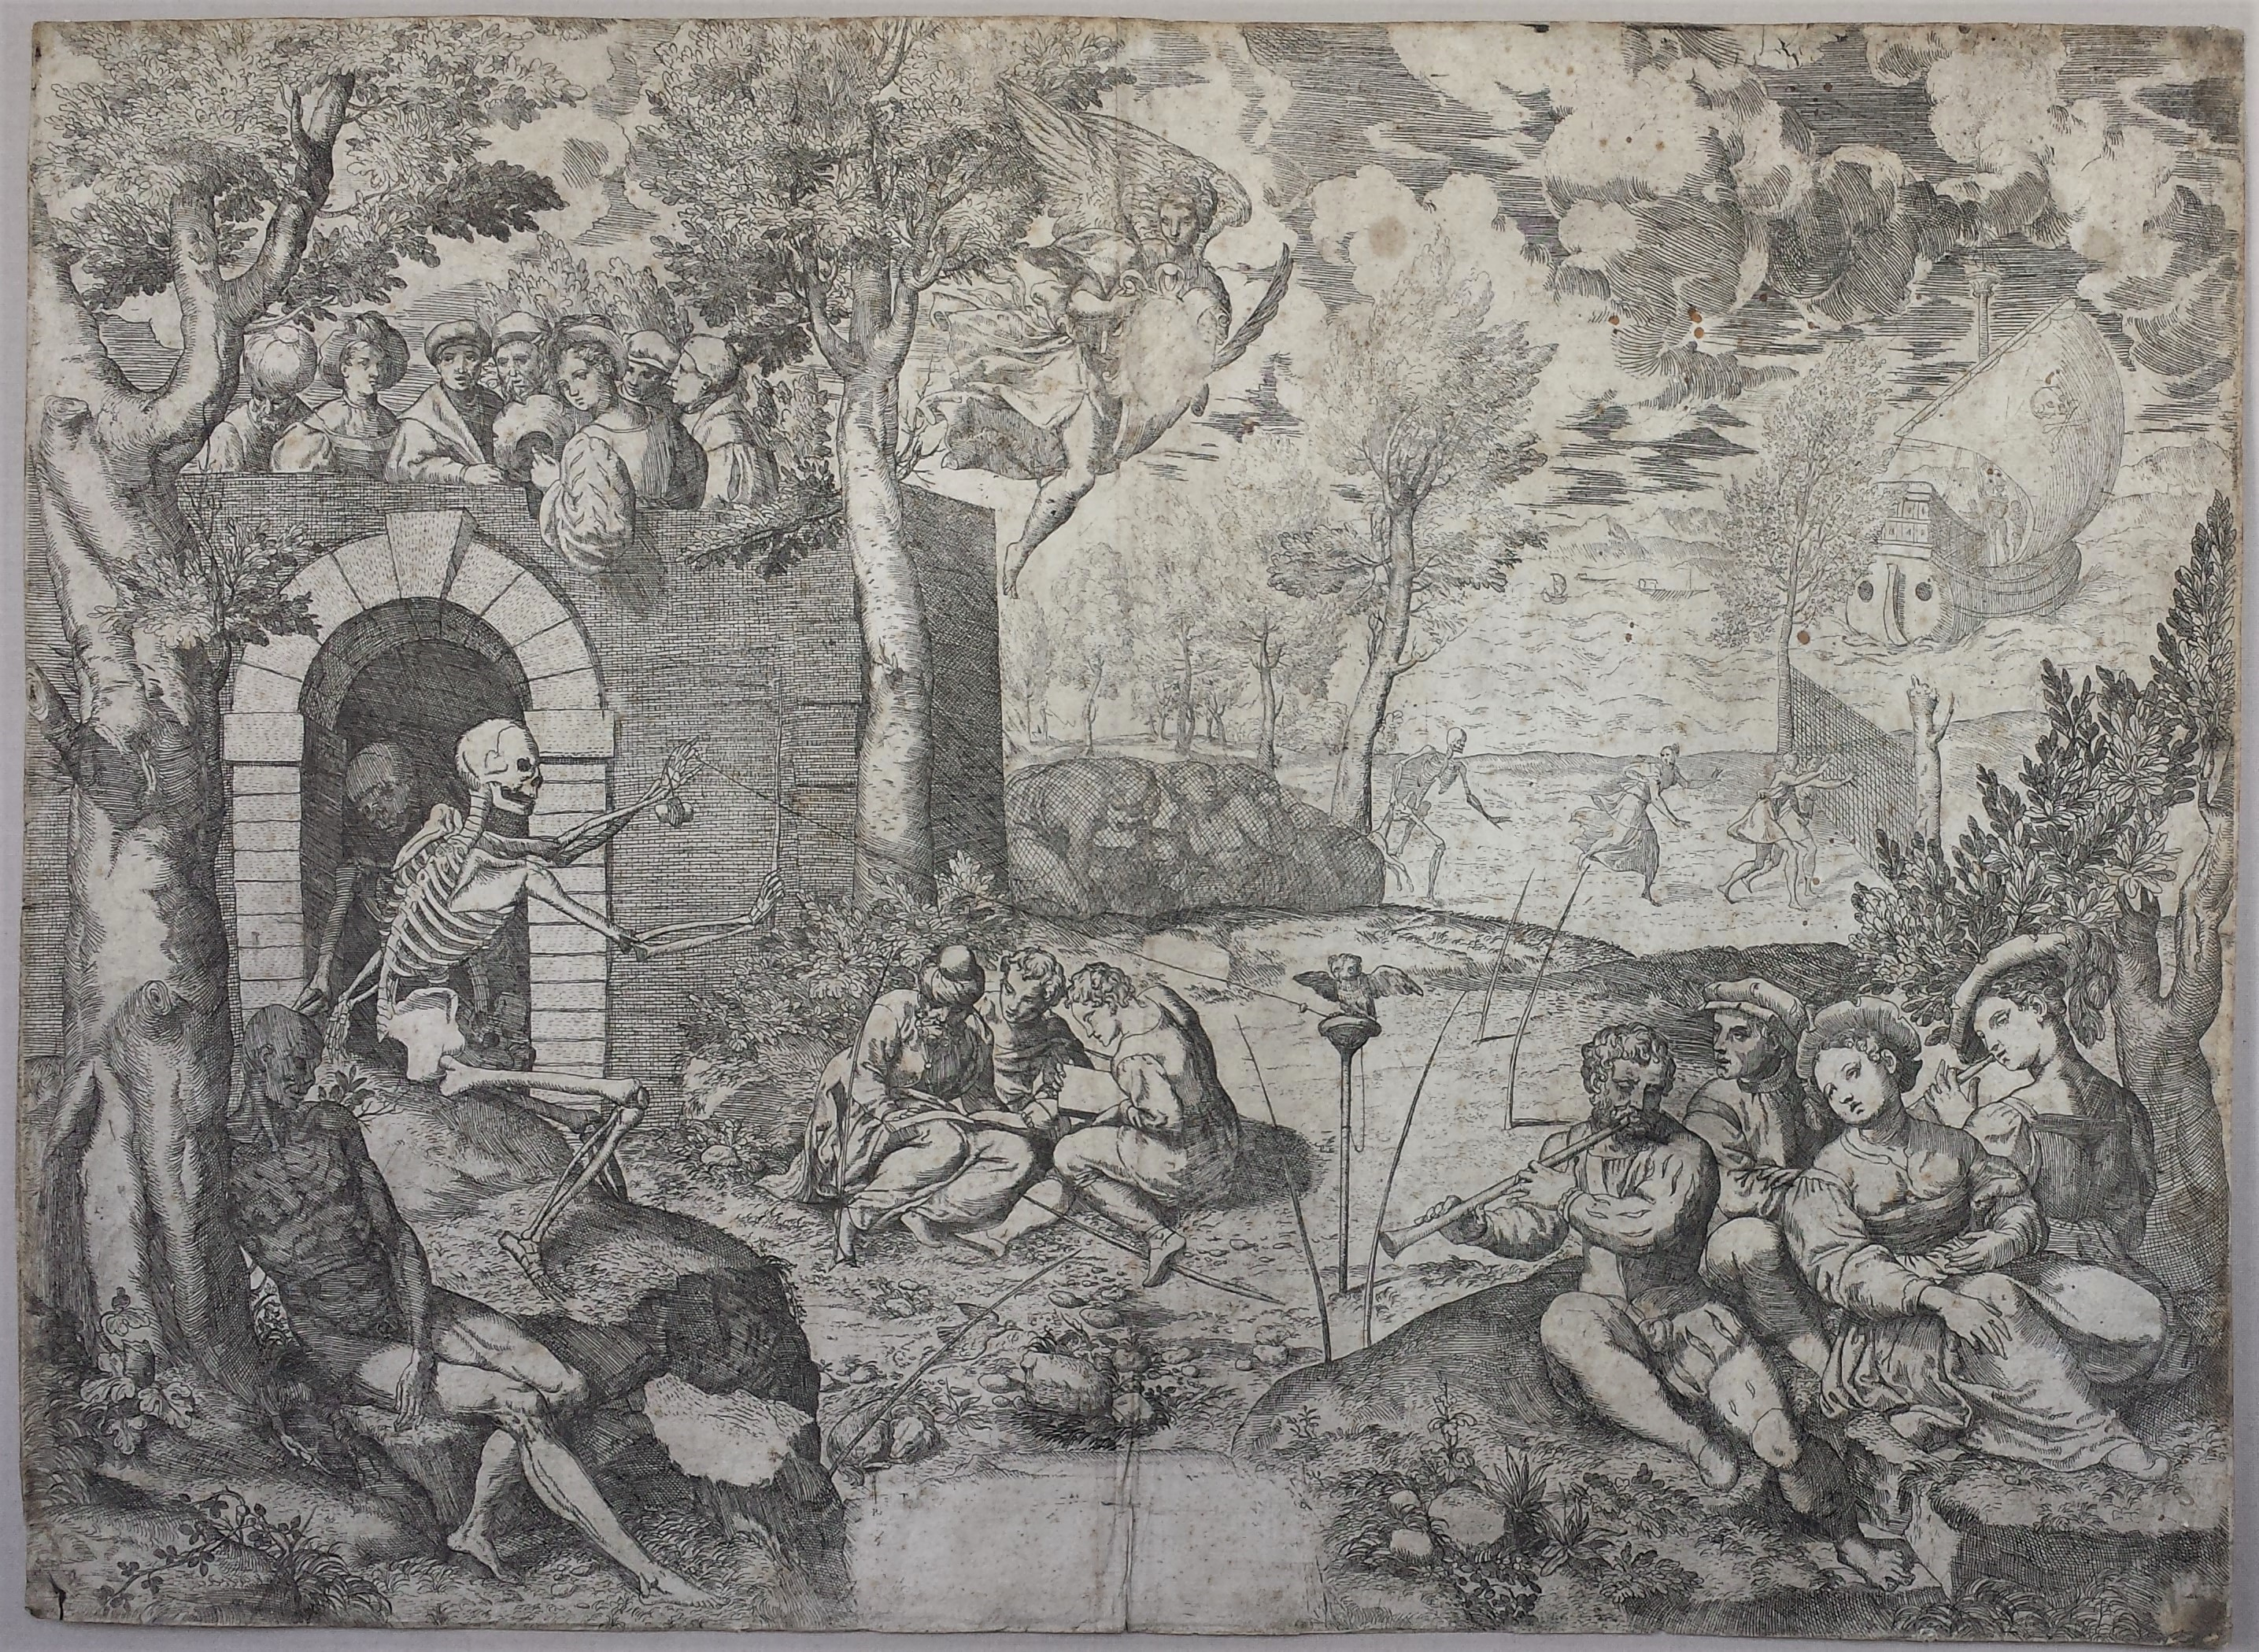 Giovanni Paolo Cimerlini, The Aviary of Death 1568, etching Blanton Museum of Art, the University of Texas at Austin